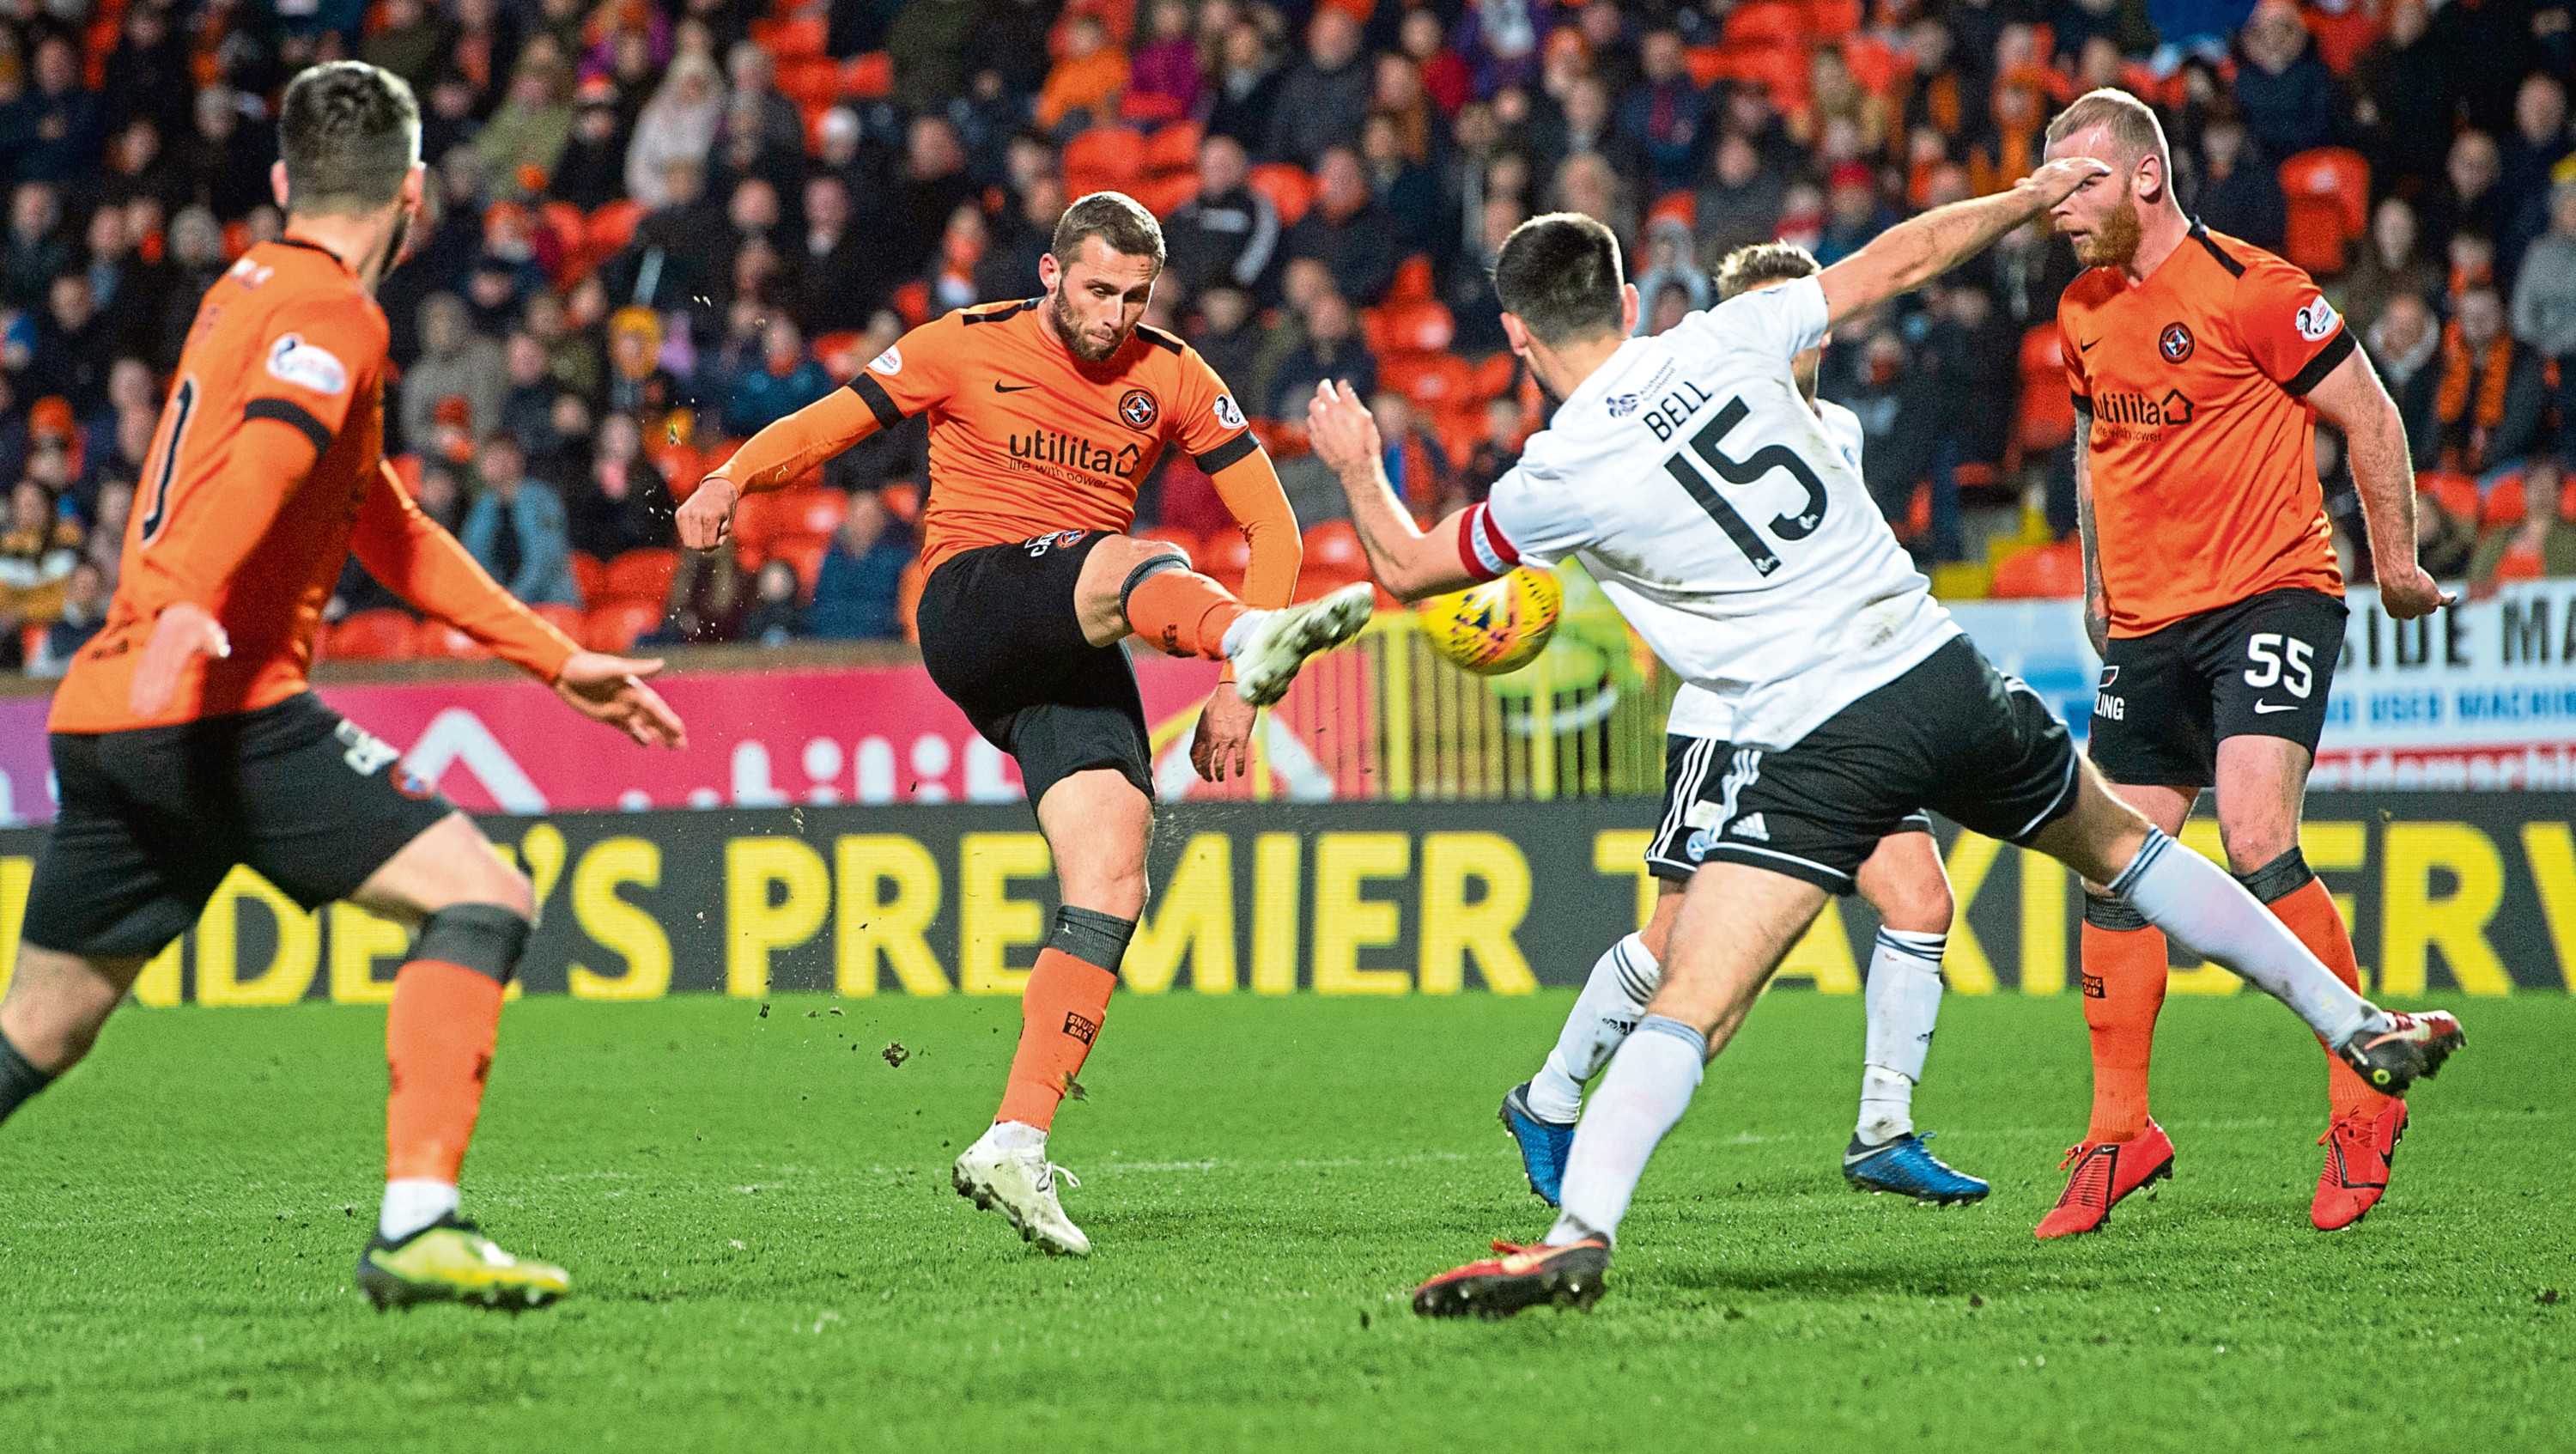 Slovakian international striker Pavol Safranko had to settle for a place on the Dundee United bench against Ayr but made a difference after coming on, firing in a superb equalising goal